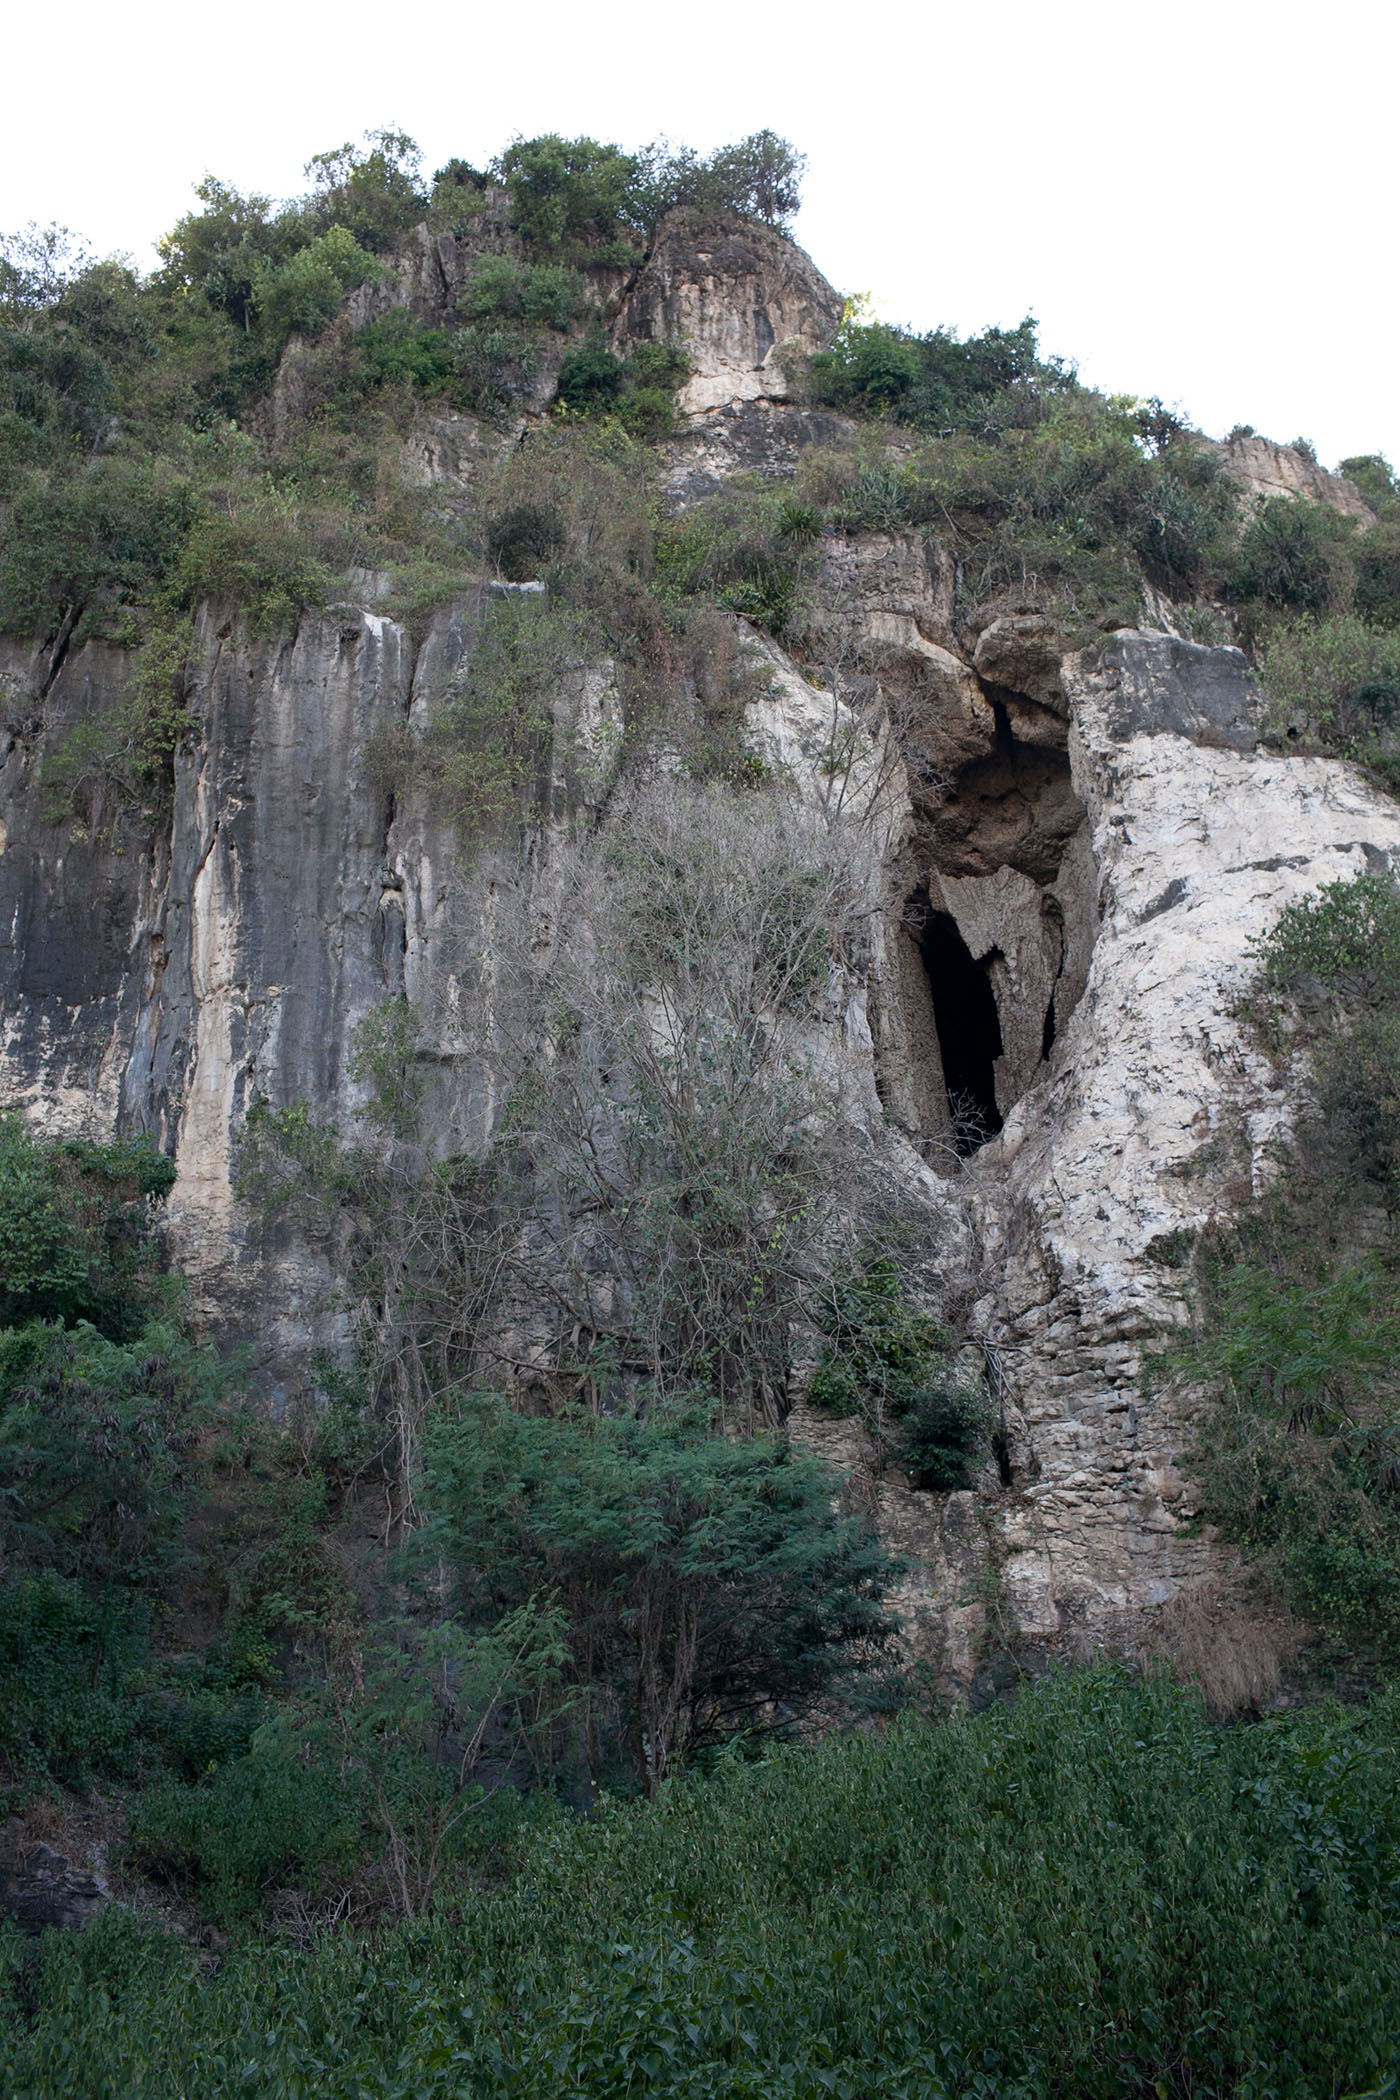 Killing cave in Battambang, Cambodia